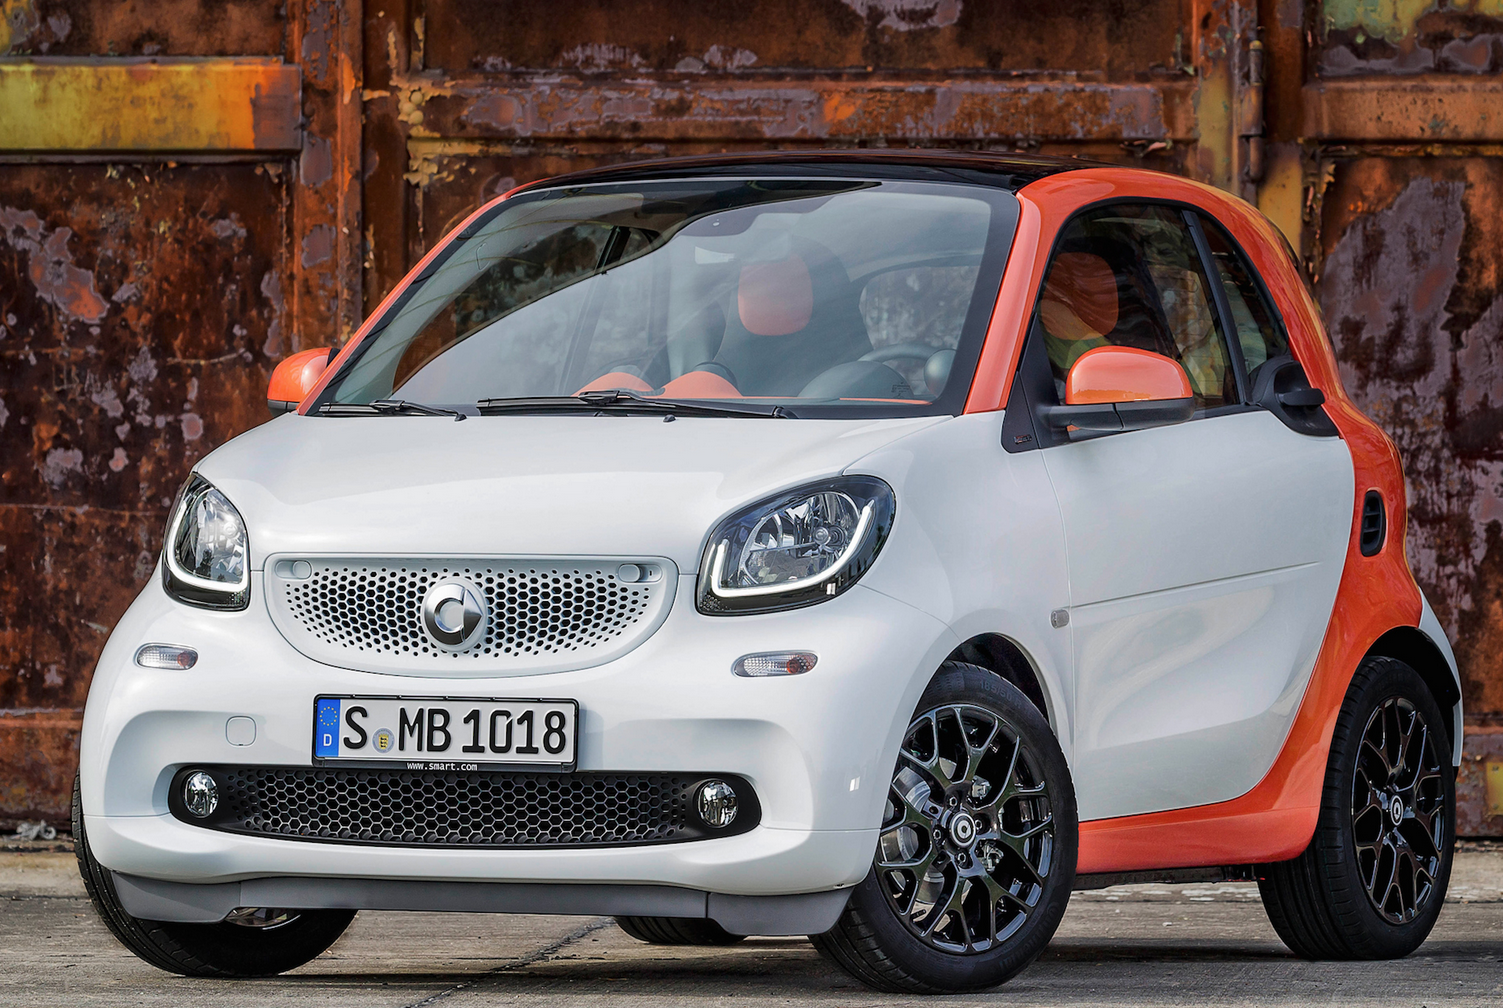 orange and grey smart fortwo car